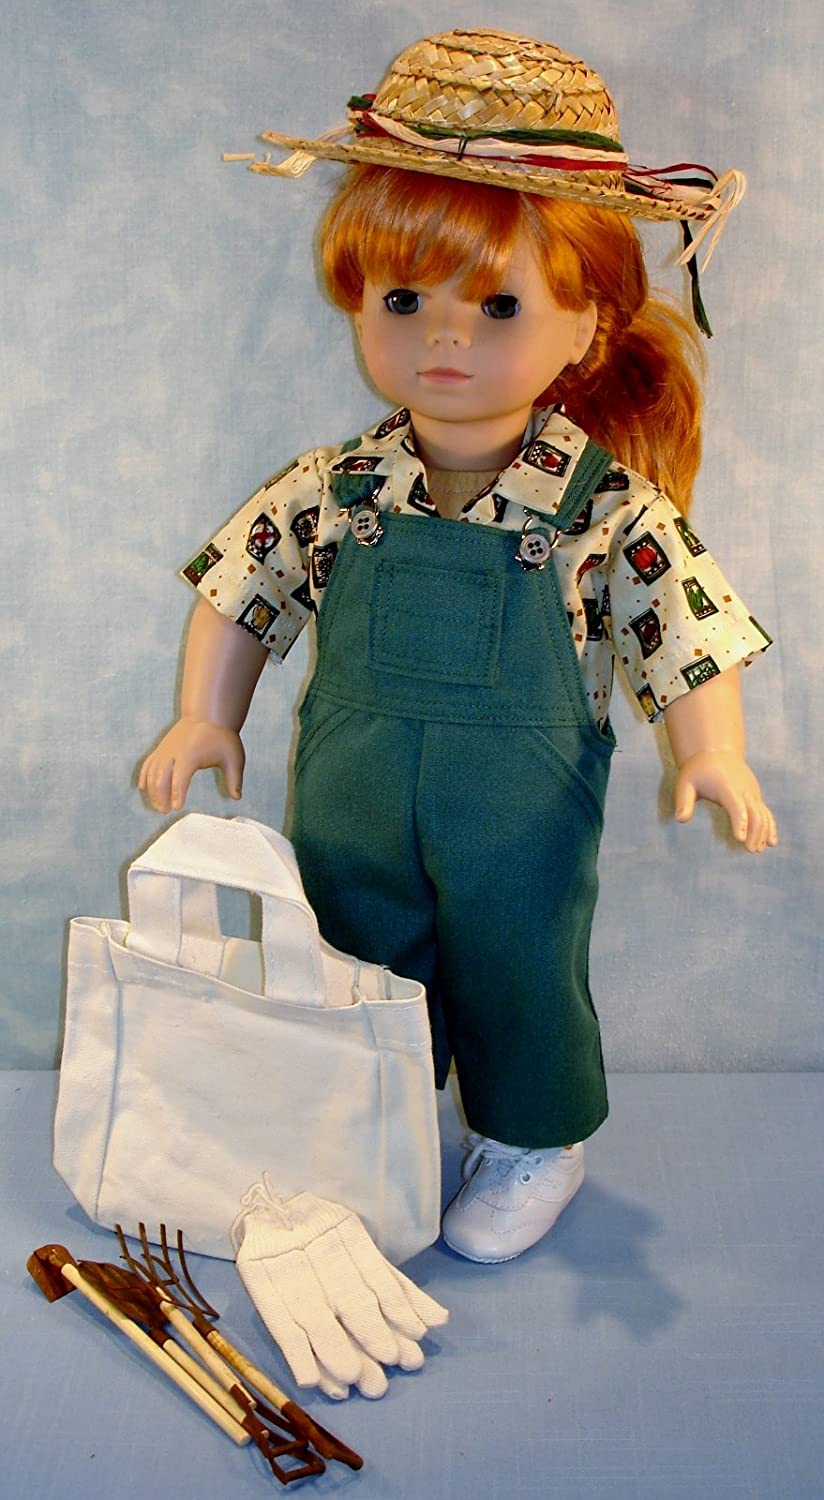 18 Inch Doll Clothes - Green Jeans Garden Outfit handmade by Jane Ellen to fit 18 inch boy or girl doll